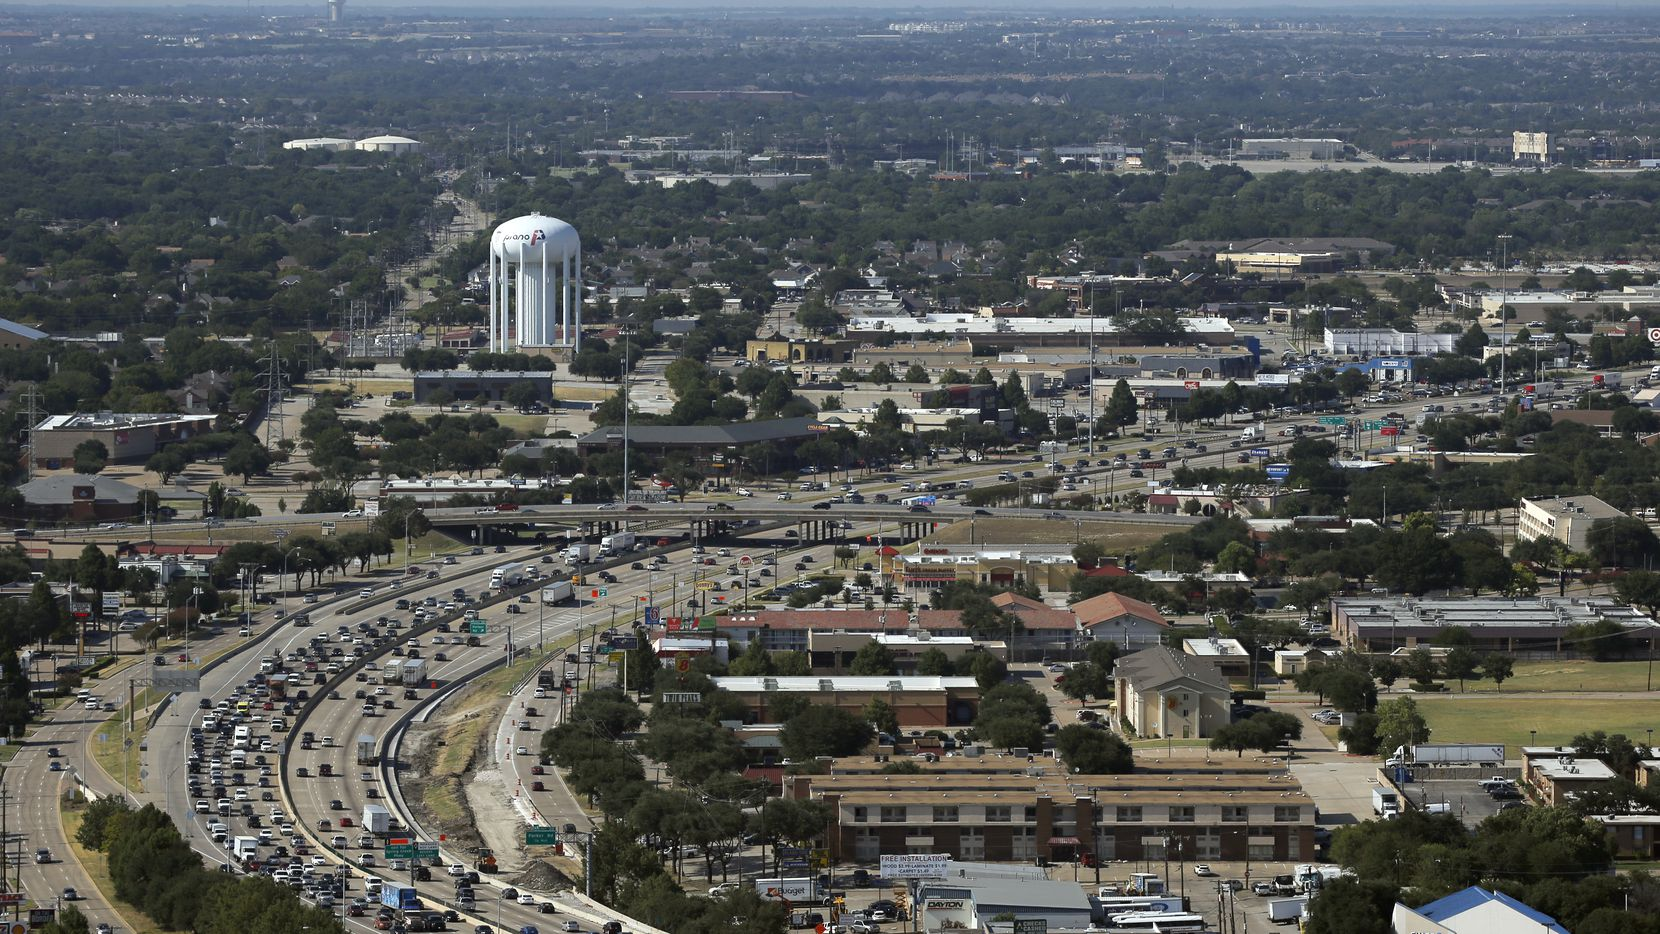 An aerial view of Central Expressway looking northbound in Plano on Thursday, August 11, 2016.